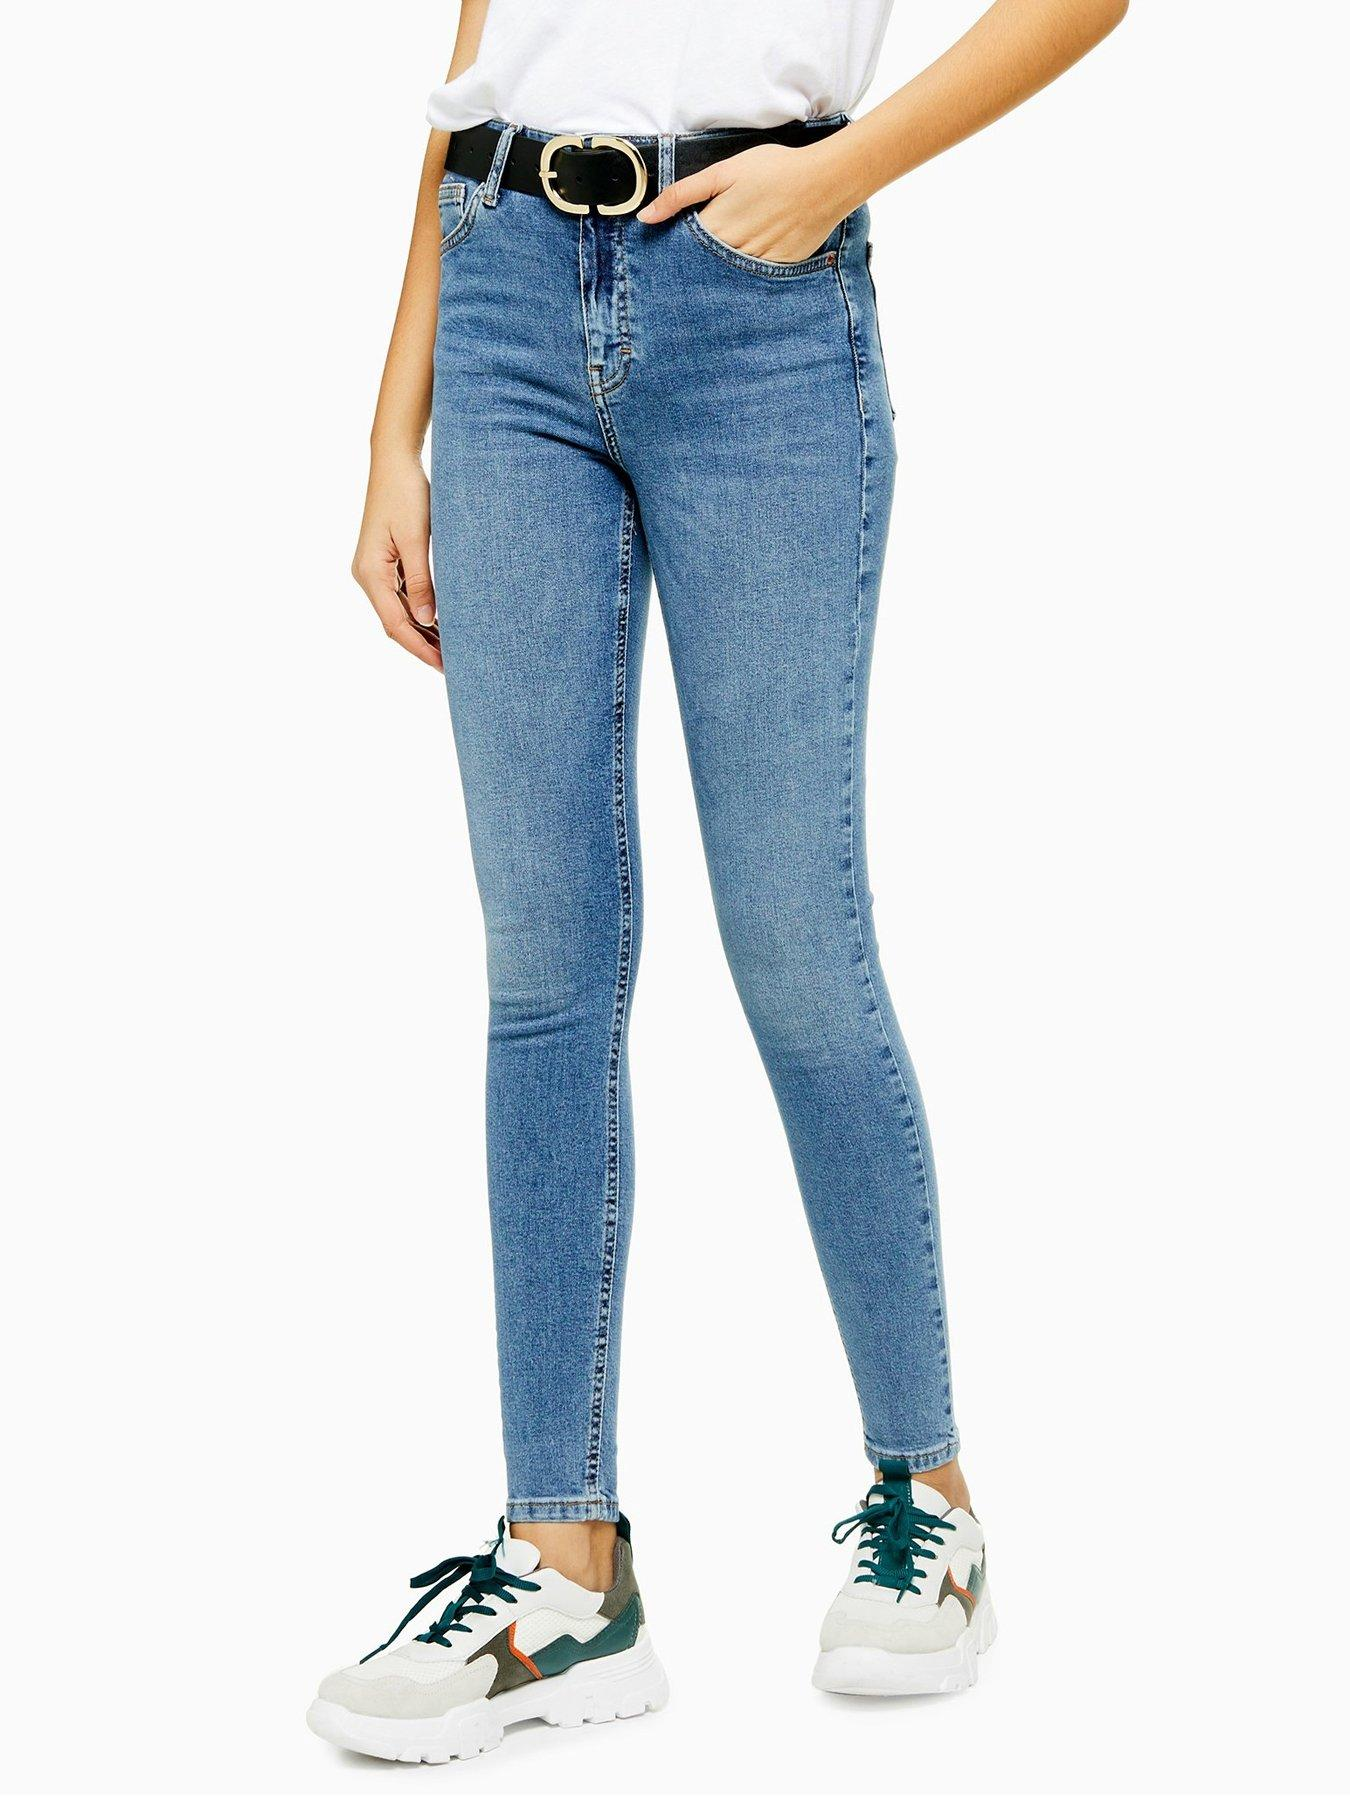 Topshop Jeans | All Styles & Sizes | Littlewoods Ireland